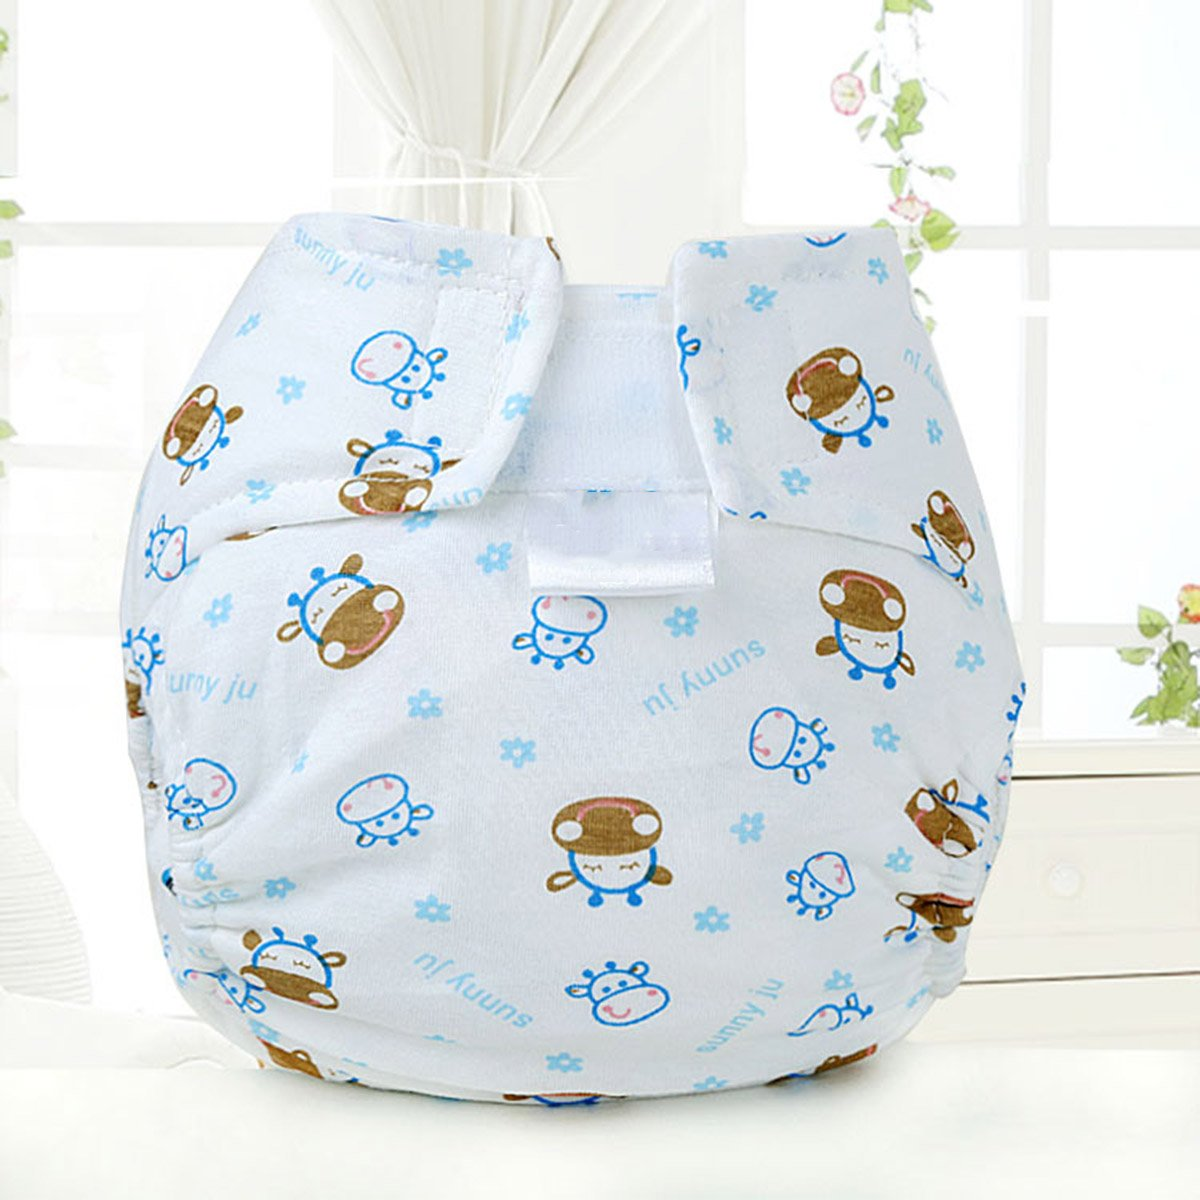 Baby Car Cow Cotton Pocket Diaper Cloth Diaper Cover White Aniwon Cloth Diapers